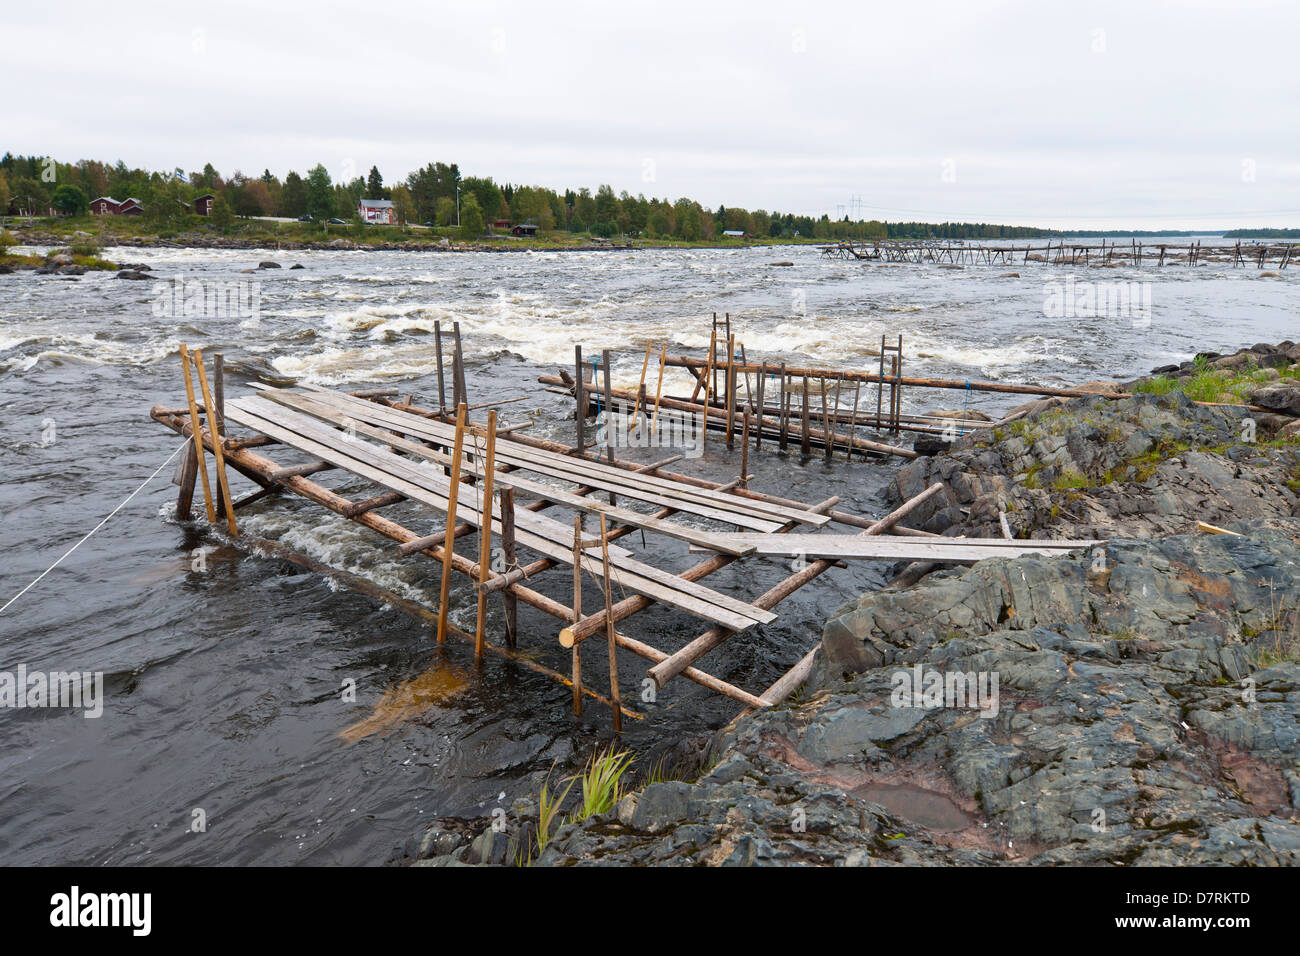 Fishing bridges in Torne älv at the border between Sweden and Finland - Stock Image